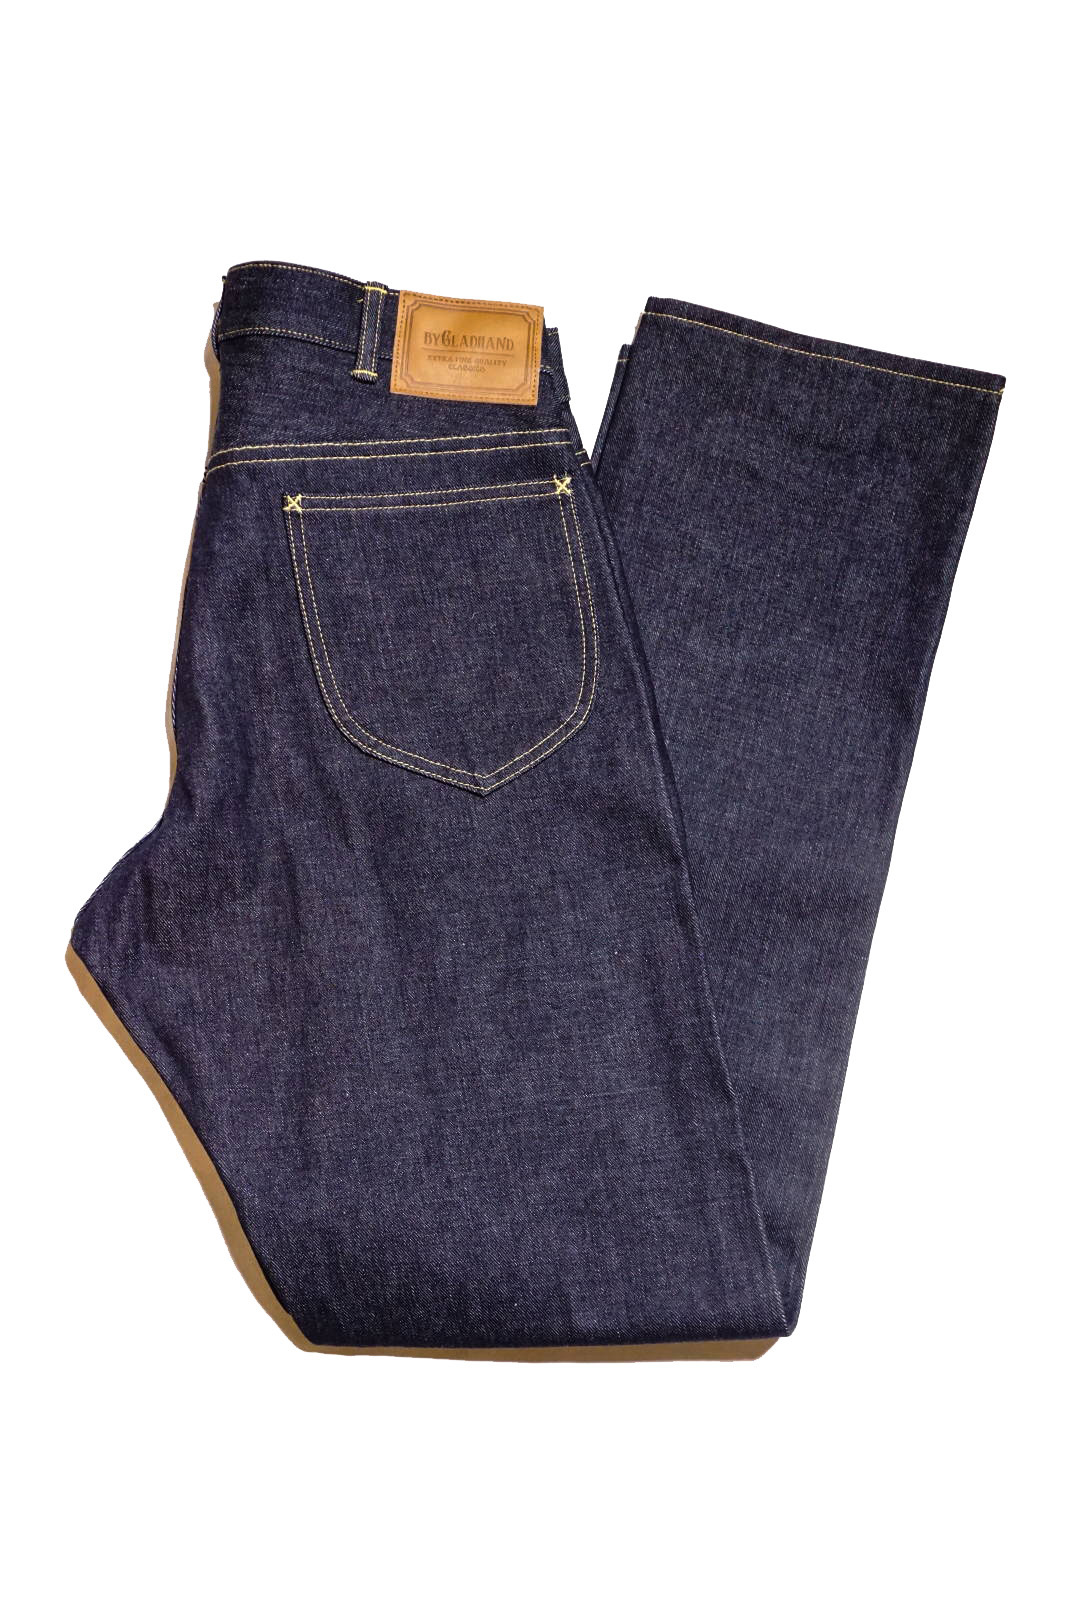 "BY GLAD HAND GLADDEN - DENIM ""TYPE-4"" INDIGO RIGID"